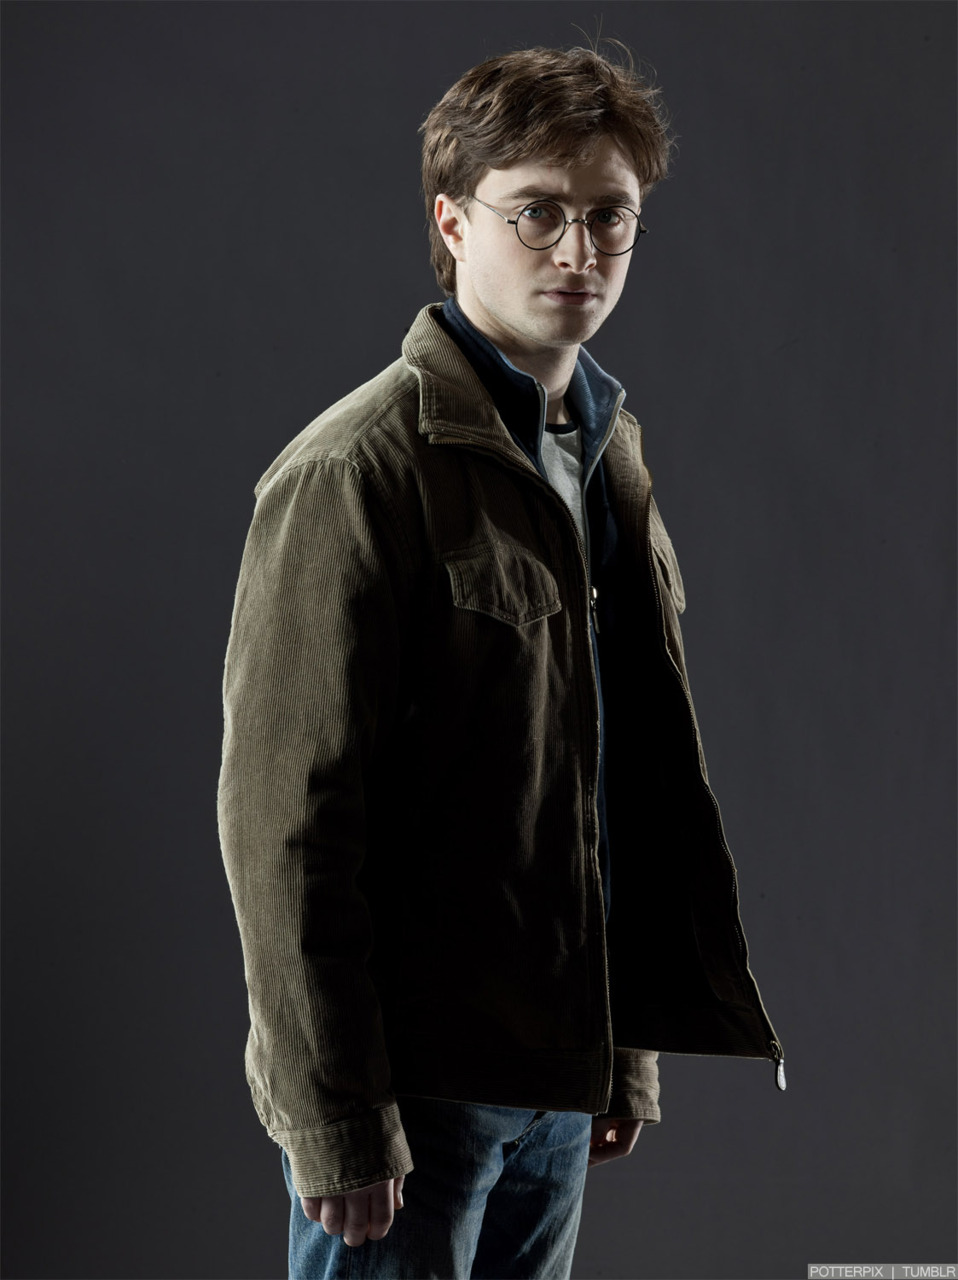 Daniel Radcliffe Harry Potter And The Deathly Hallows Part 2 Deathly Hallows Part 2